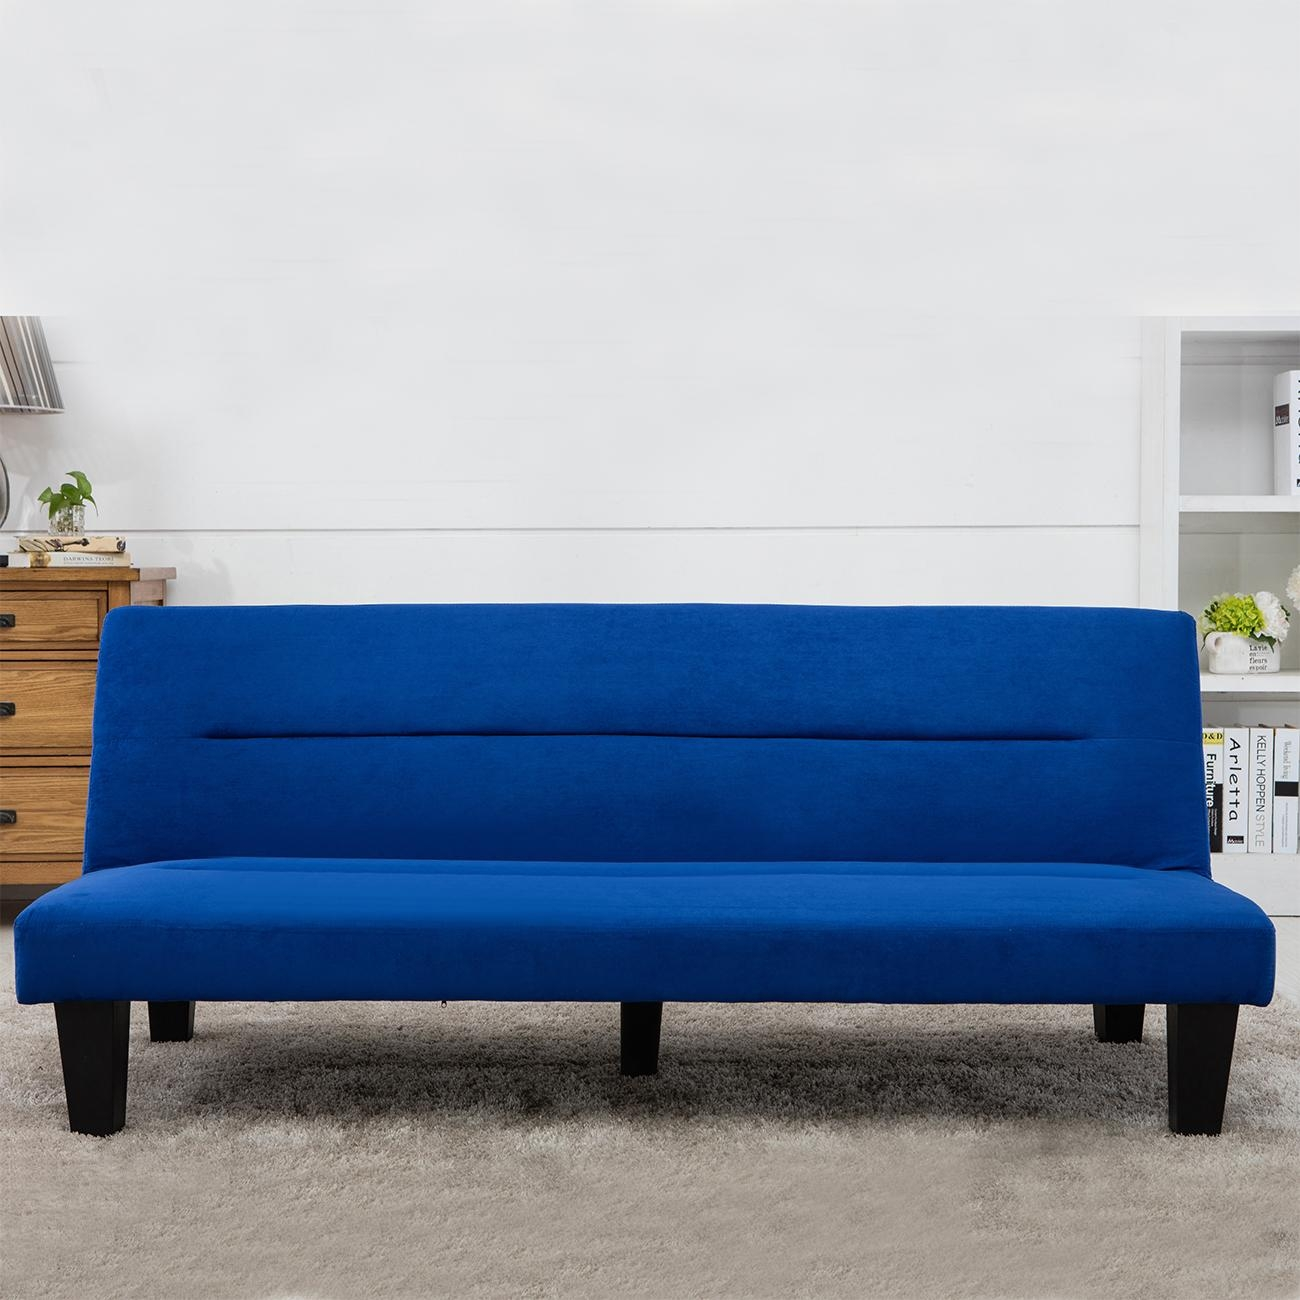 Modern Style Sofa Bed Futon Couch Sleeper Lounge Sleep Dorm Office Pertaining To Sofa Lounger Beds (Image 15 of 20)